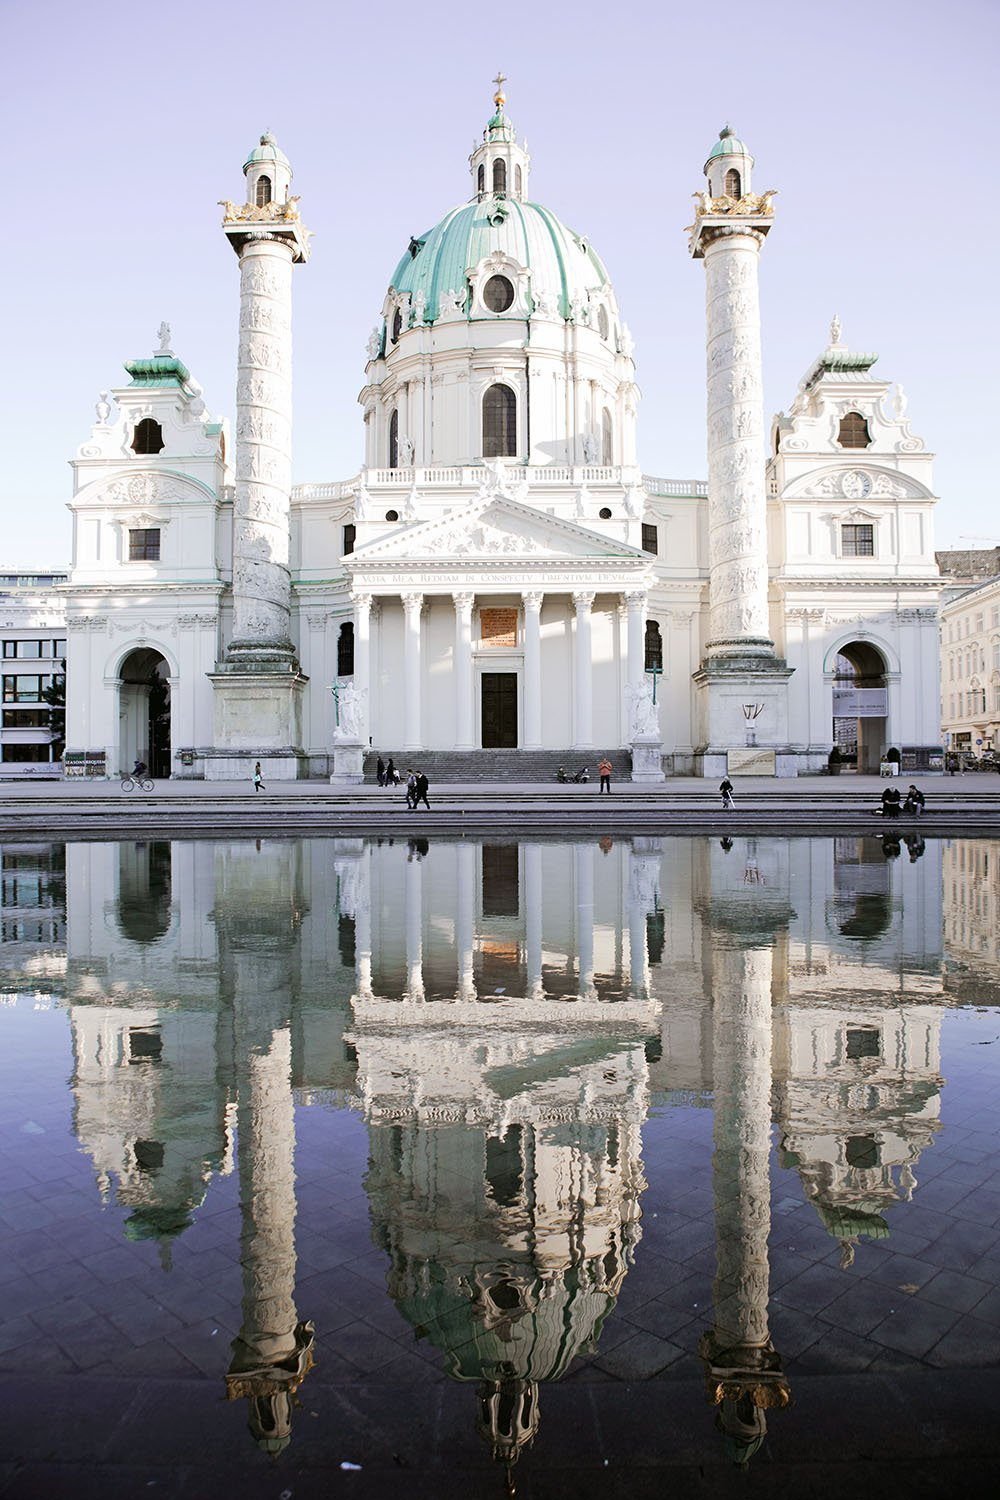 Vienna is filled to the brim with beautiful buildings from every art movement. This is Karlskirche, the city's most outstanding baroque church. Read more about the city's top historical landmarks in this essential travel guide to Vienna, Austria.